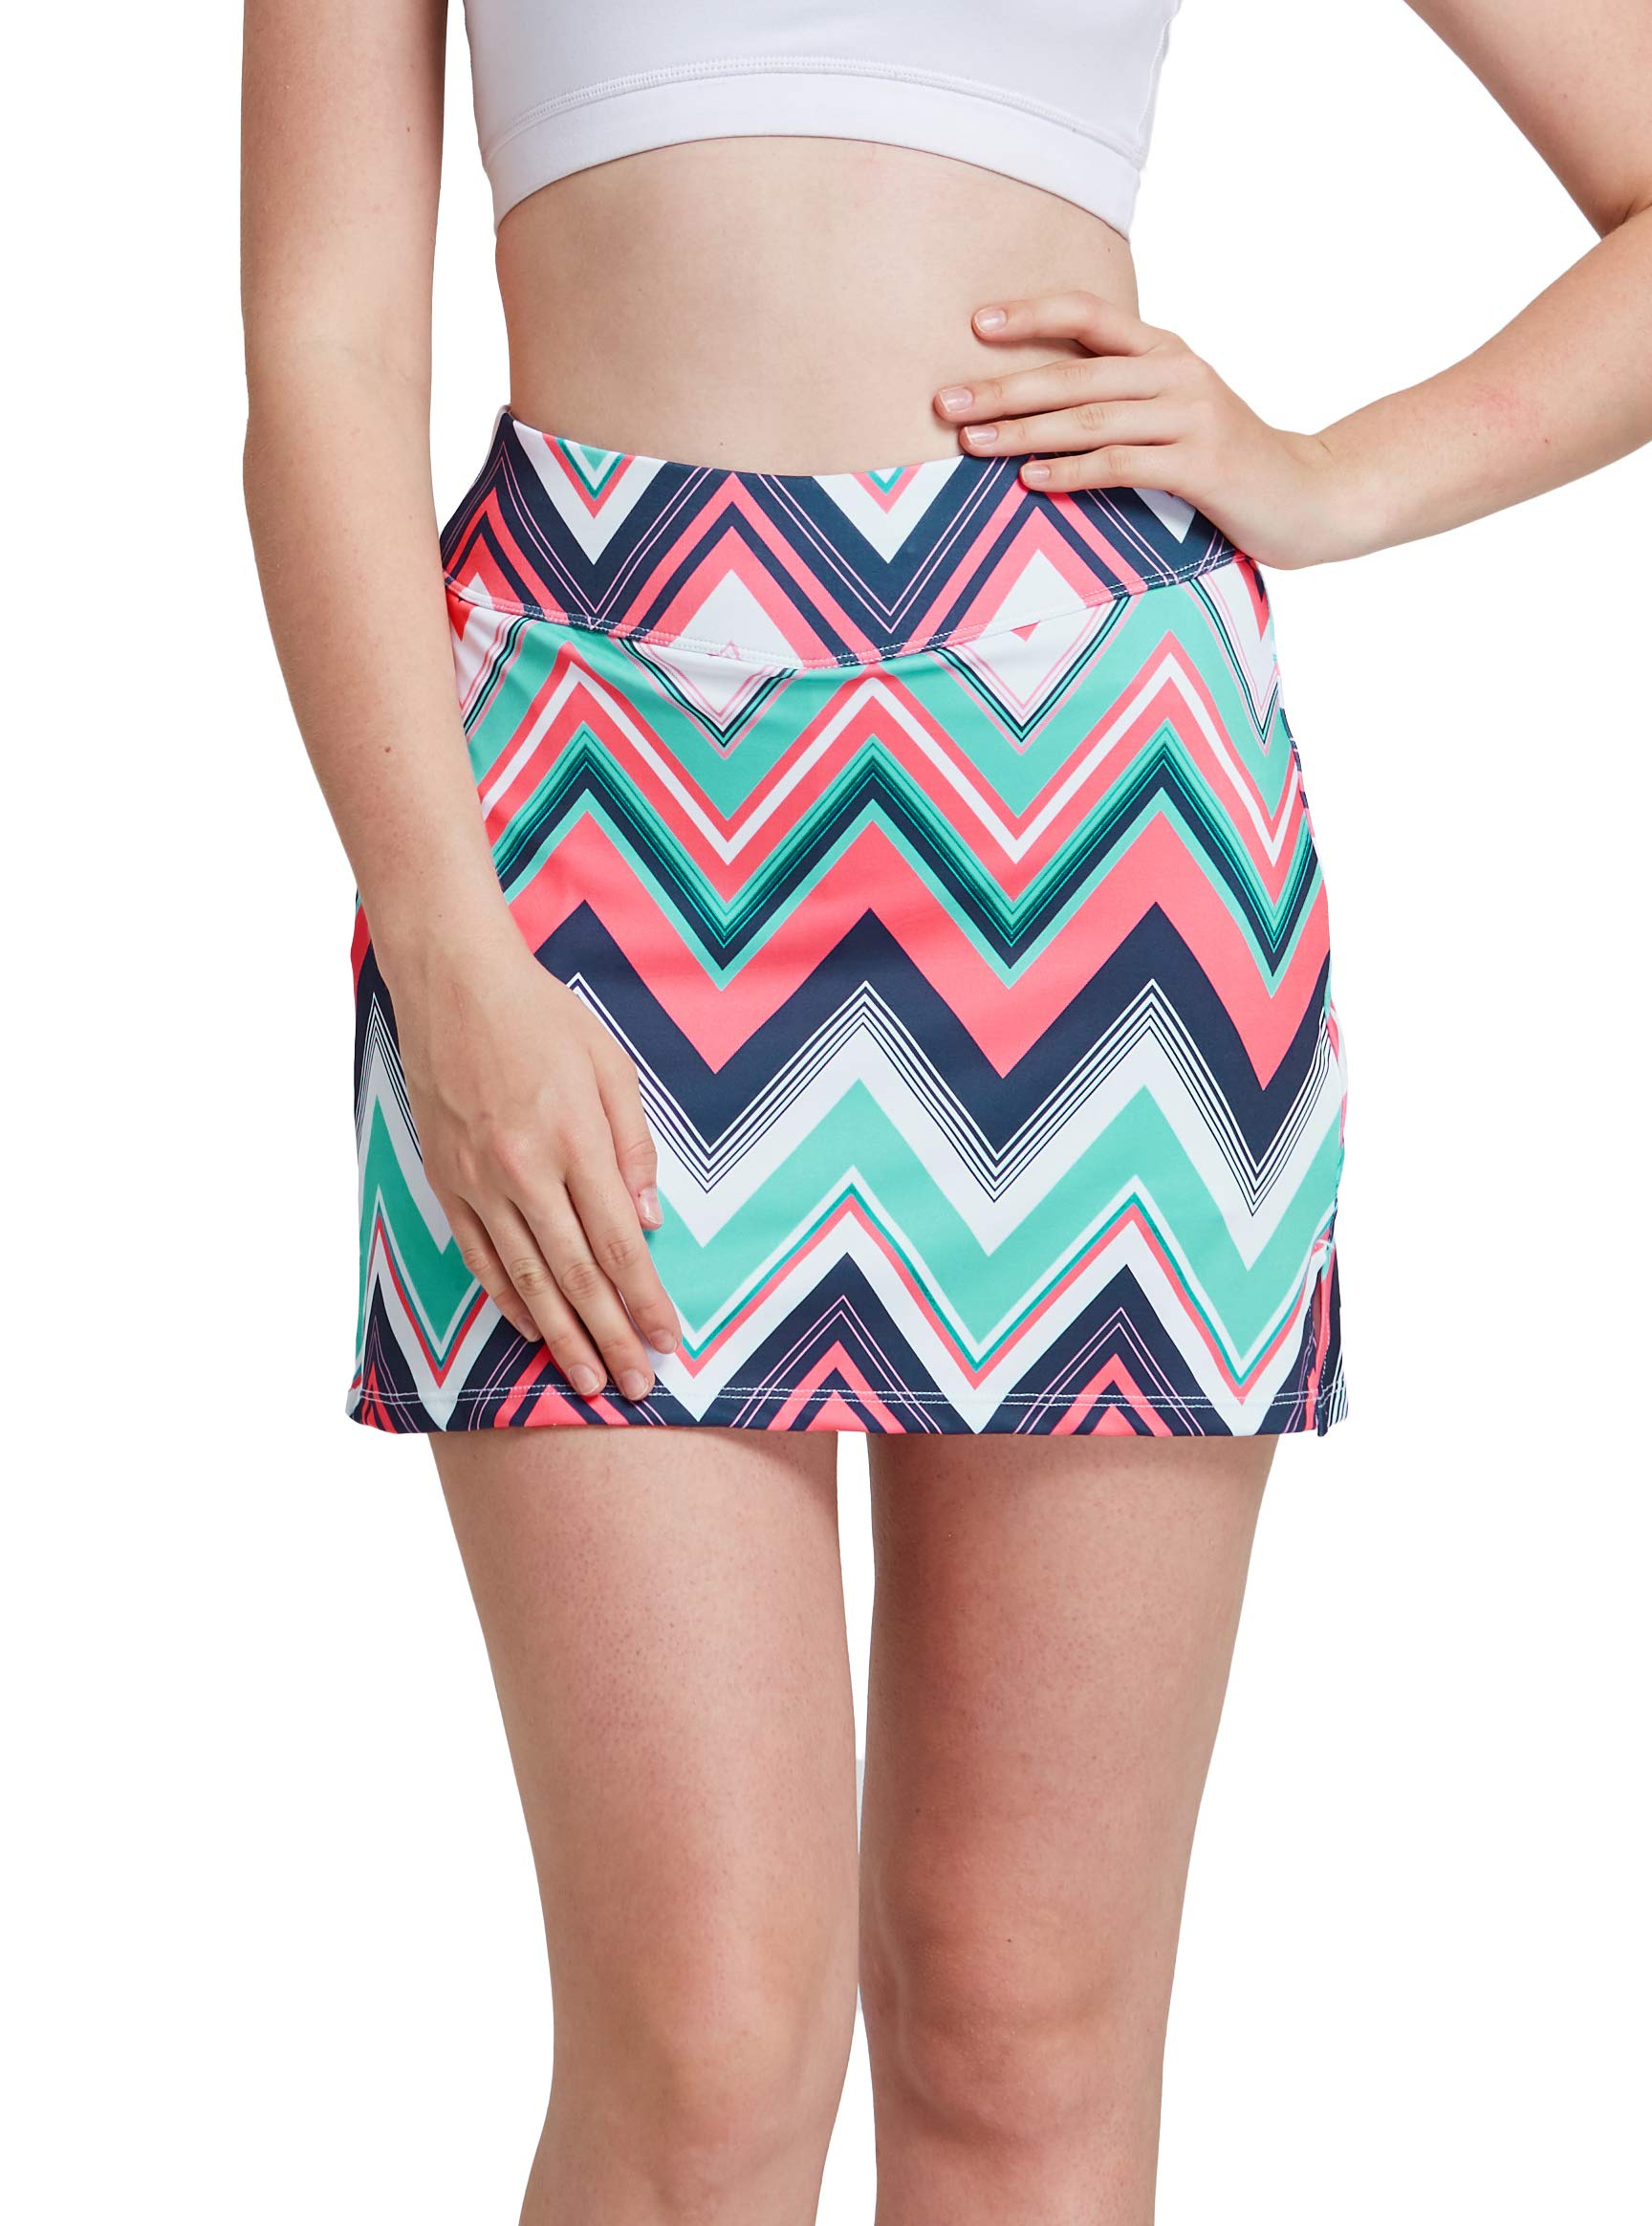 Womens Skort Built in Skirts for Golf Tennis Workout Casual Athleta Wear with Pockets by HonourSex